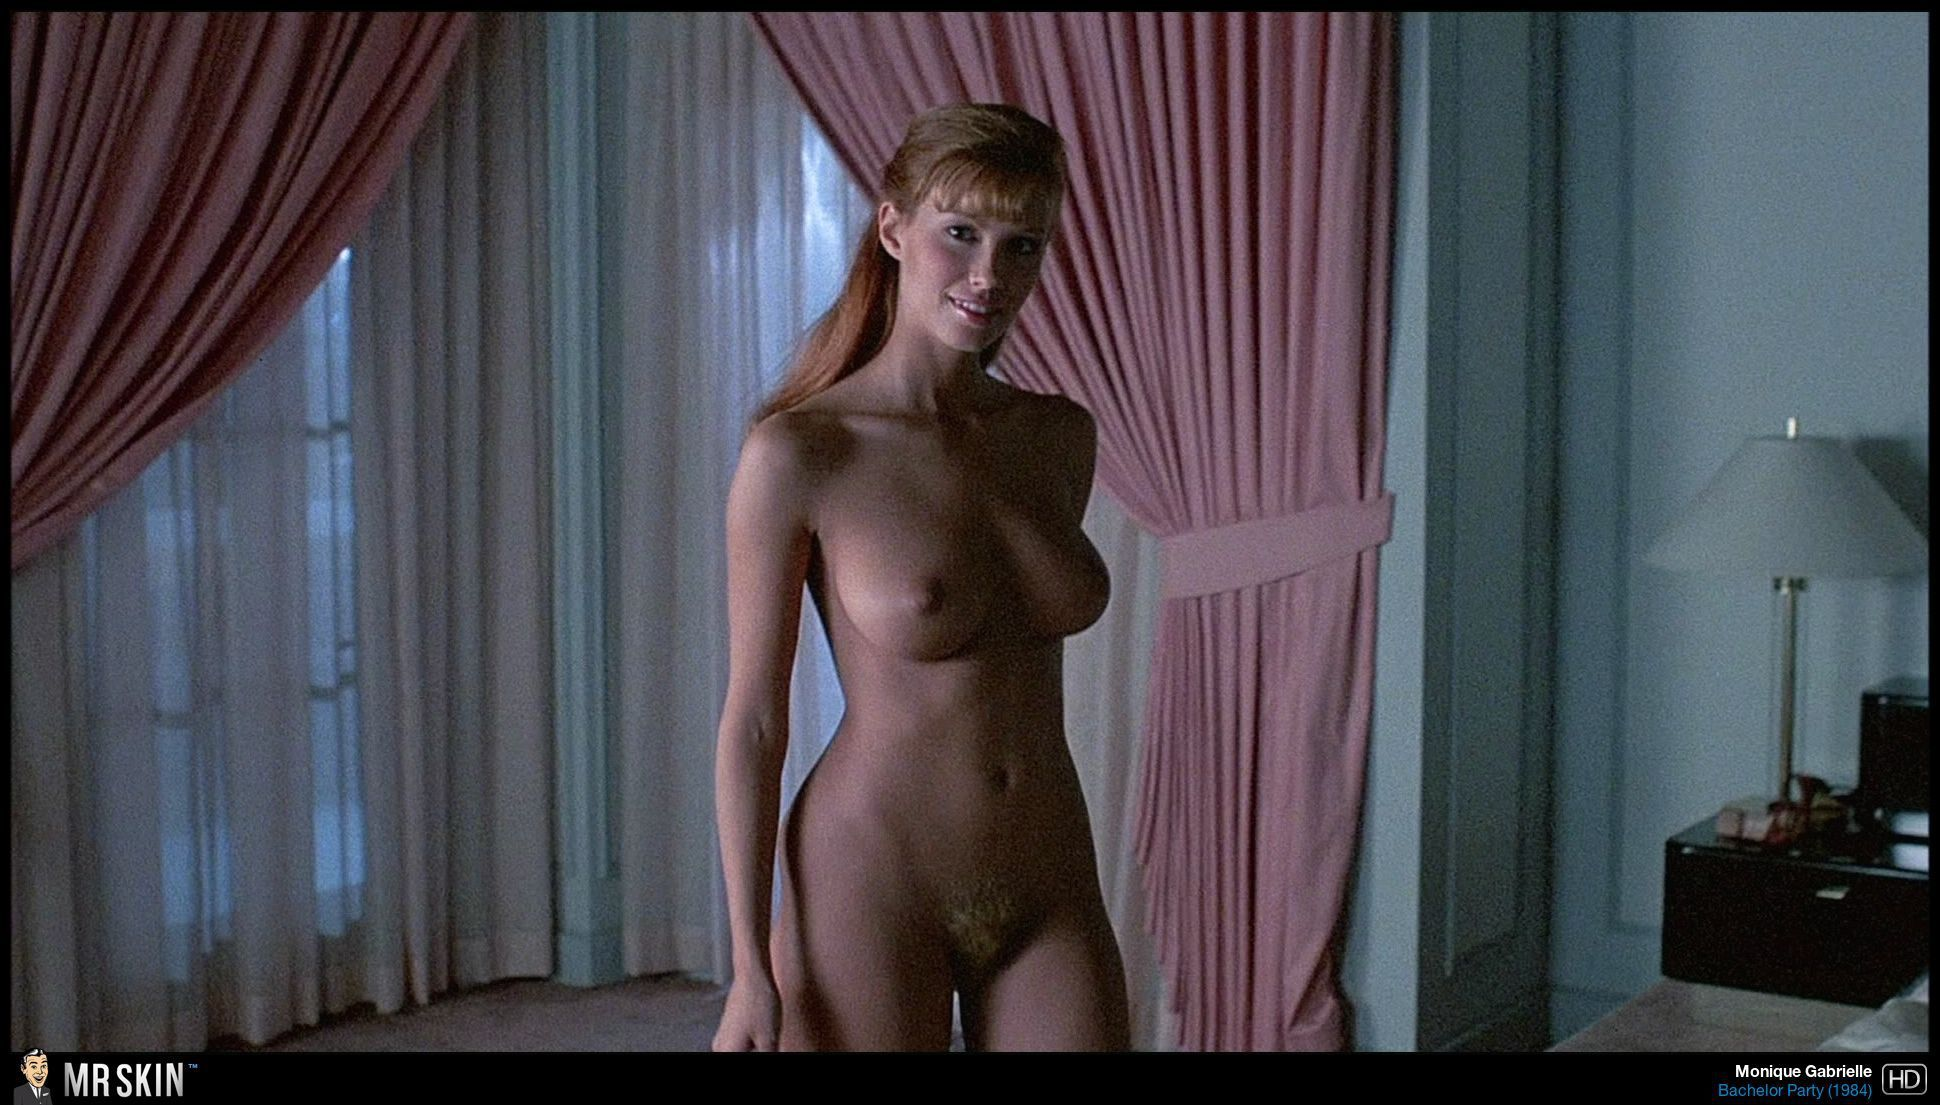 Revenge of the nerds nudes